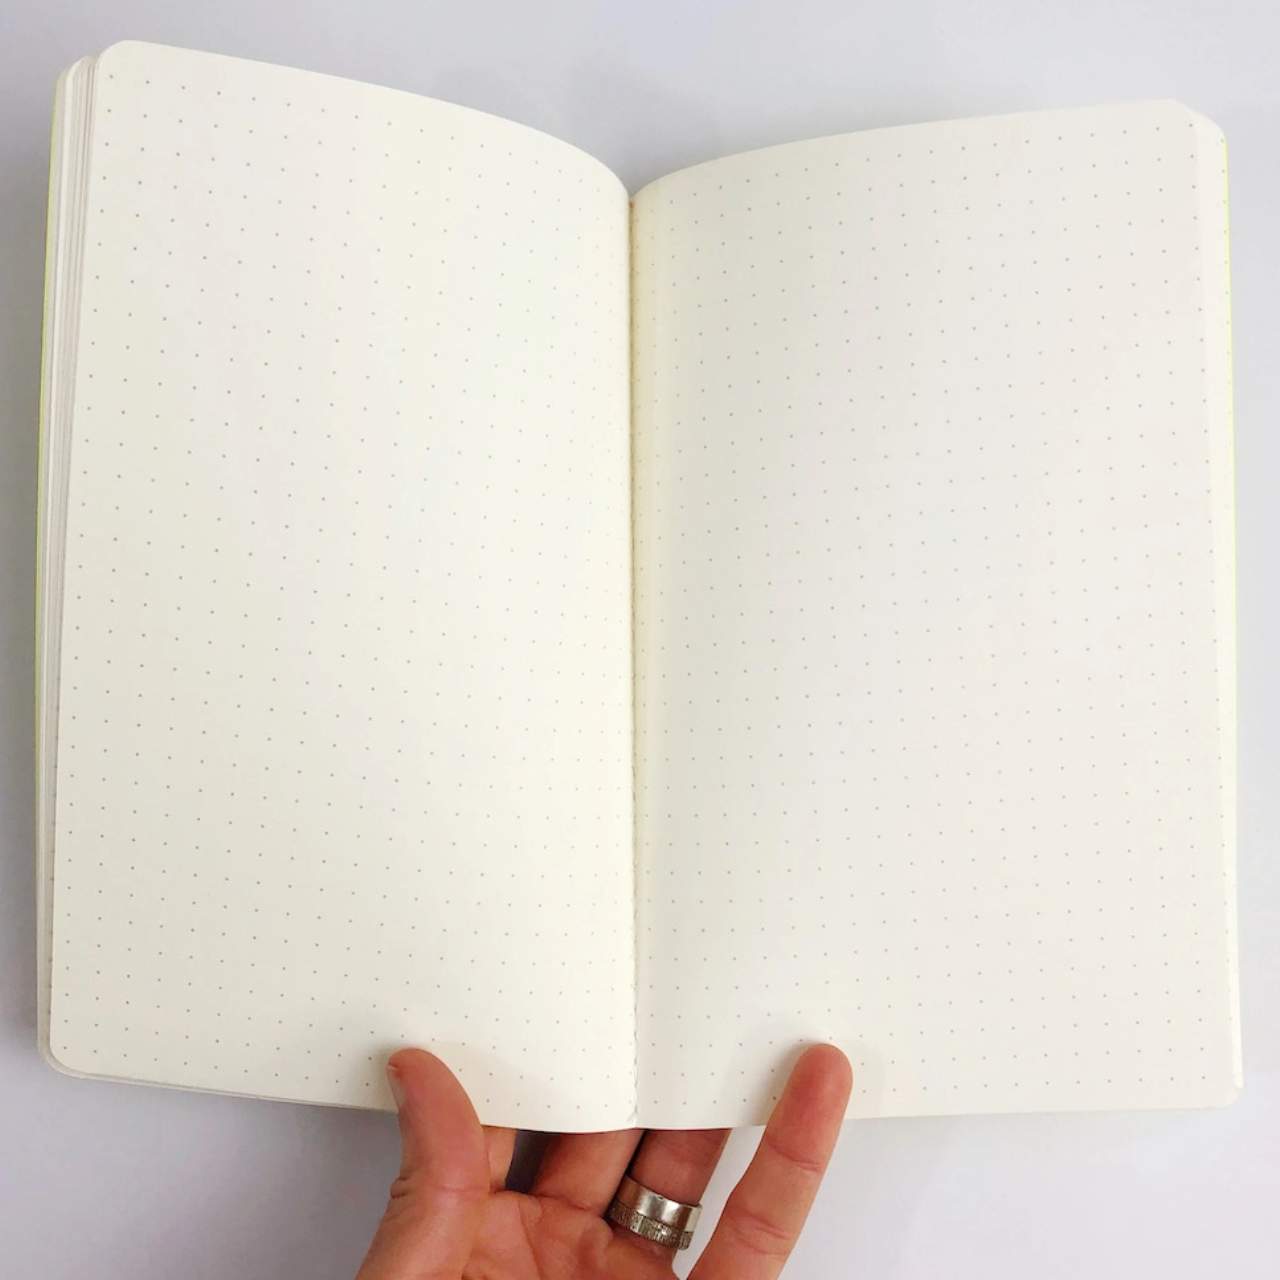 The Rainbow Vision Space Rainbow Dot Notebook in Light Blue